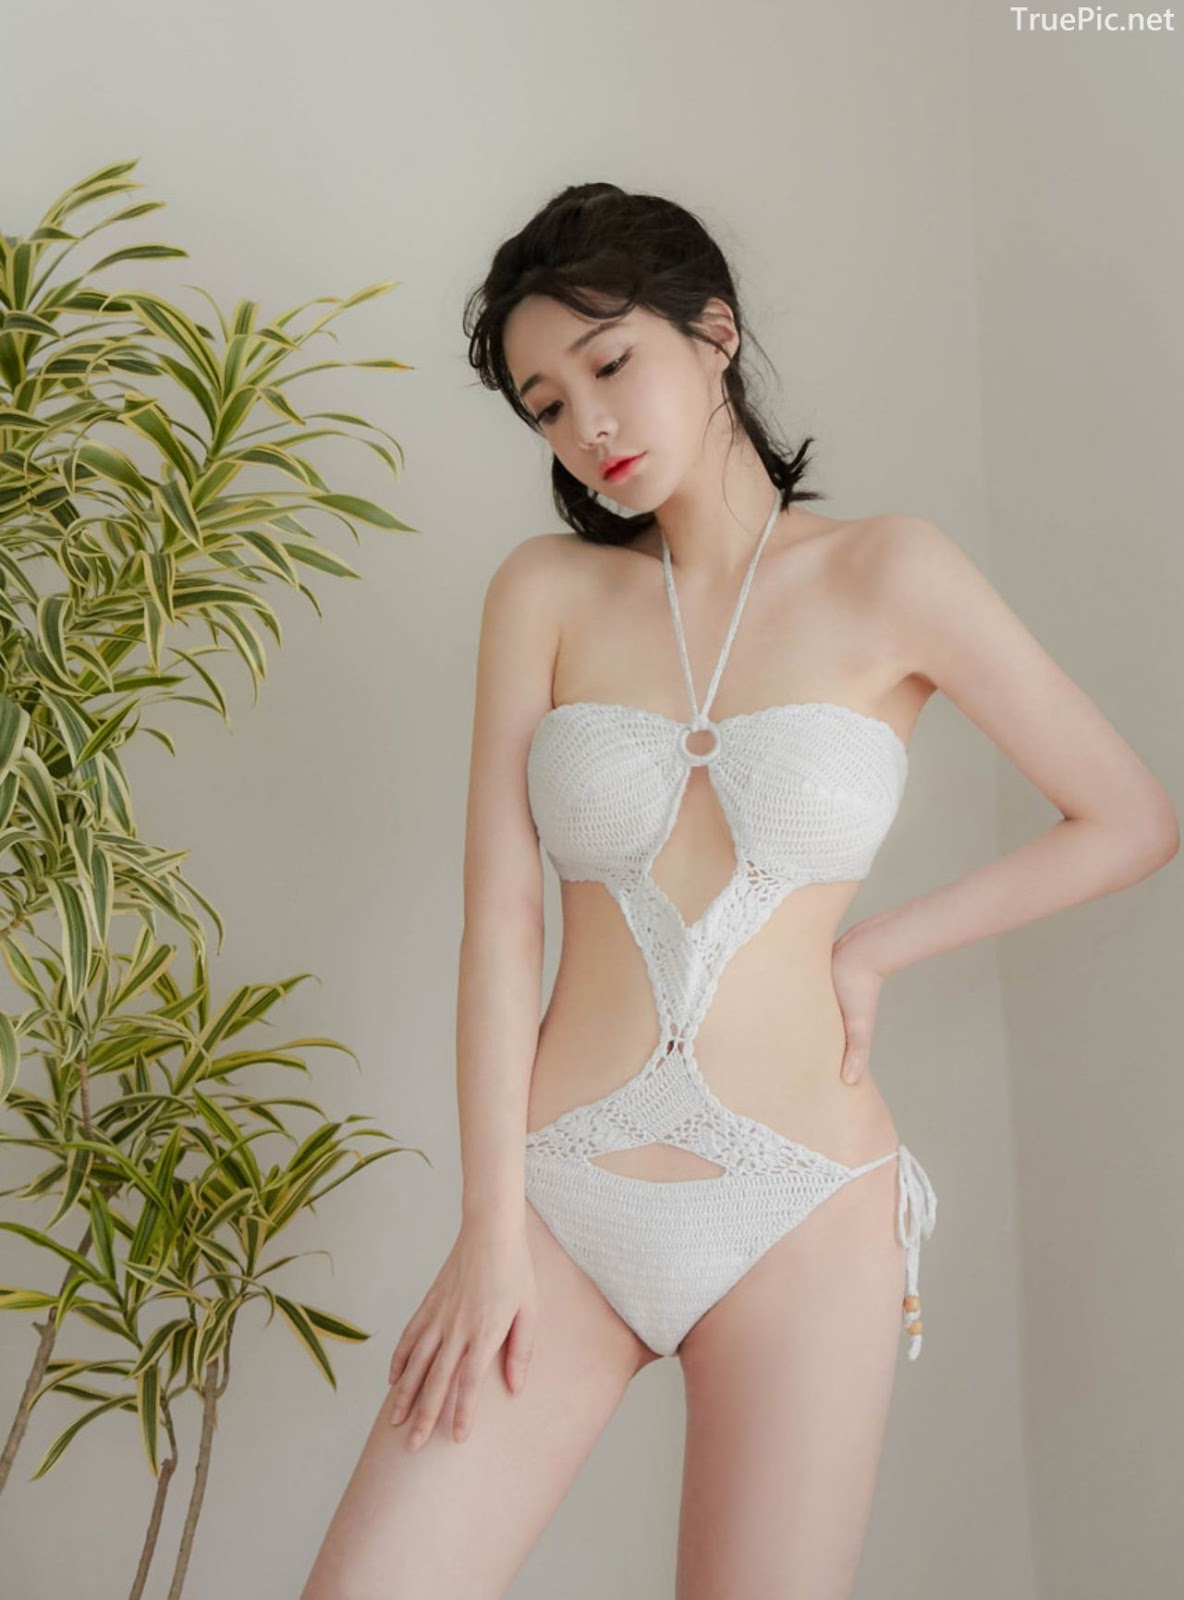 Yoo Gyeong - White vs Black swimsuit - Korean model and fashion - Picture 2